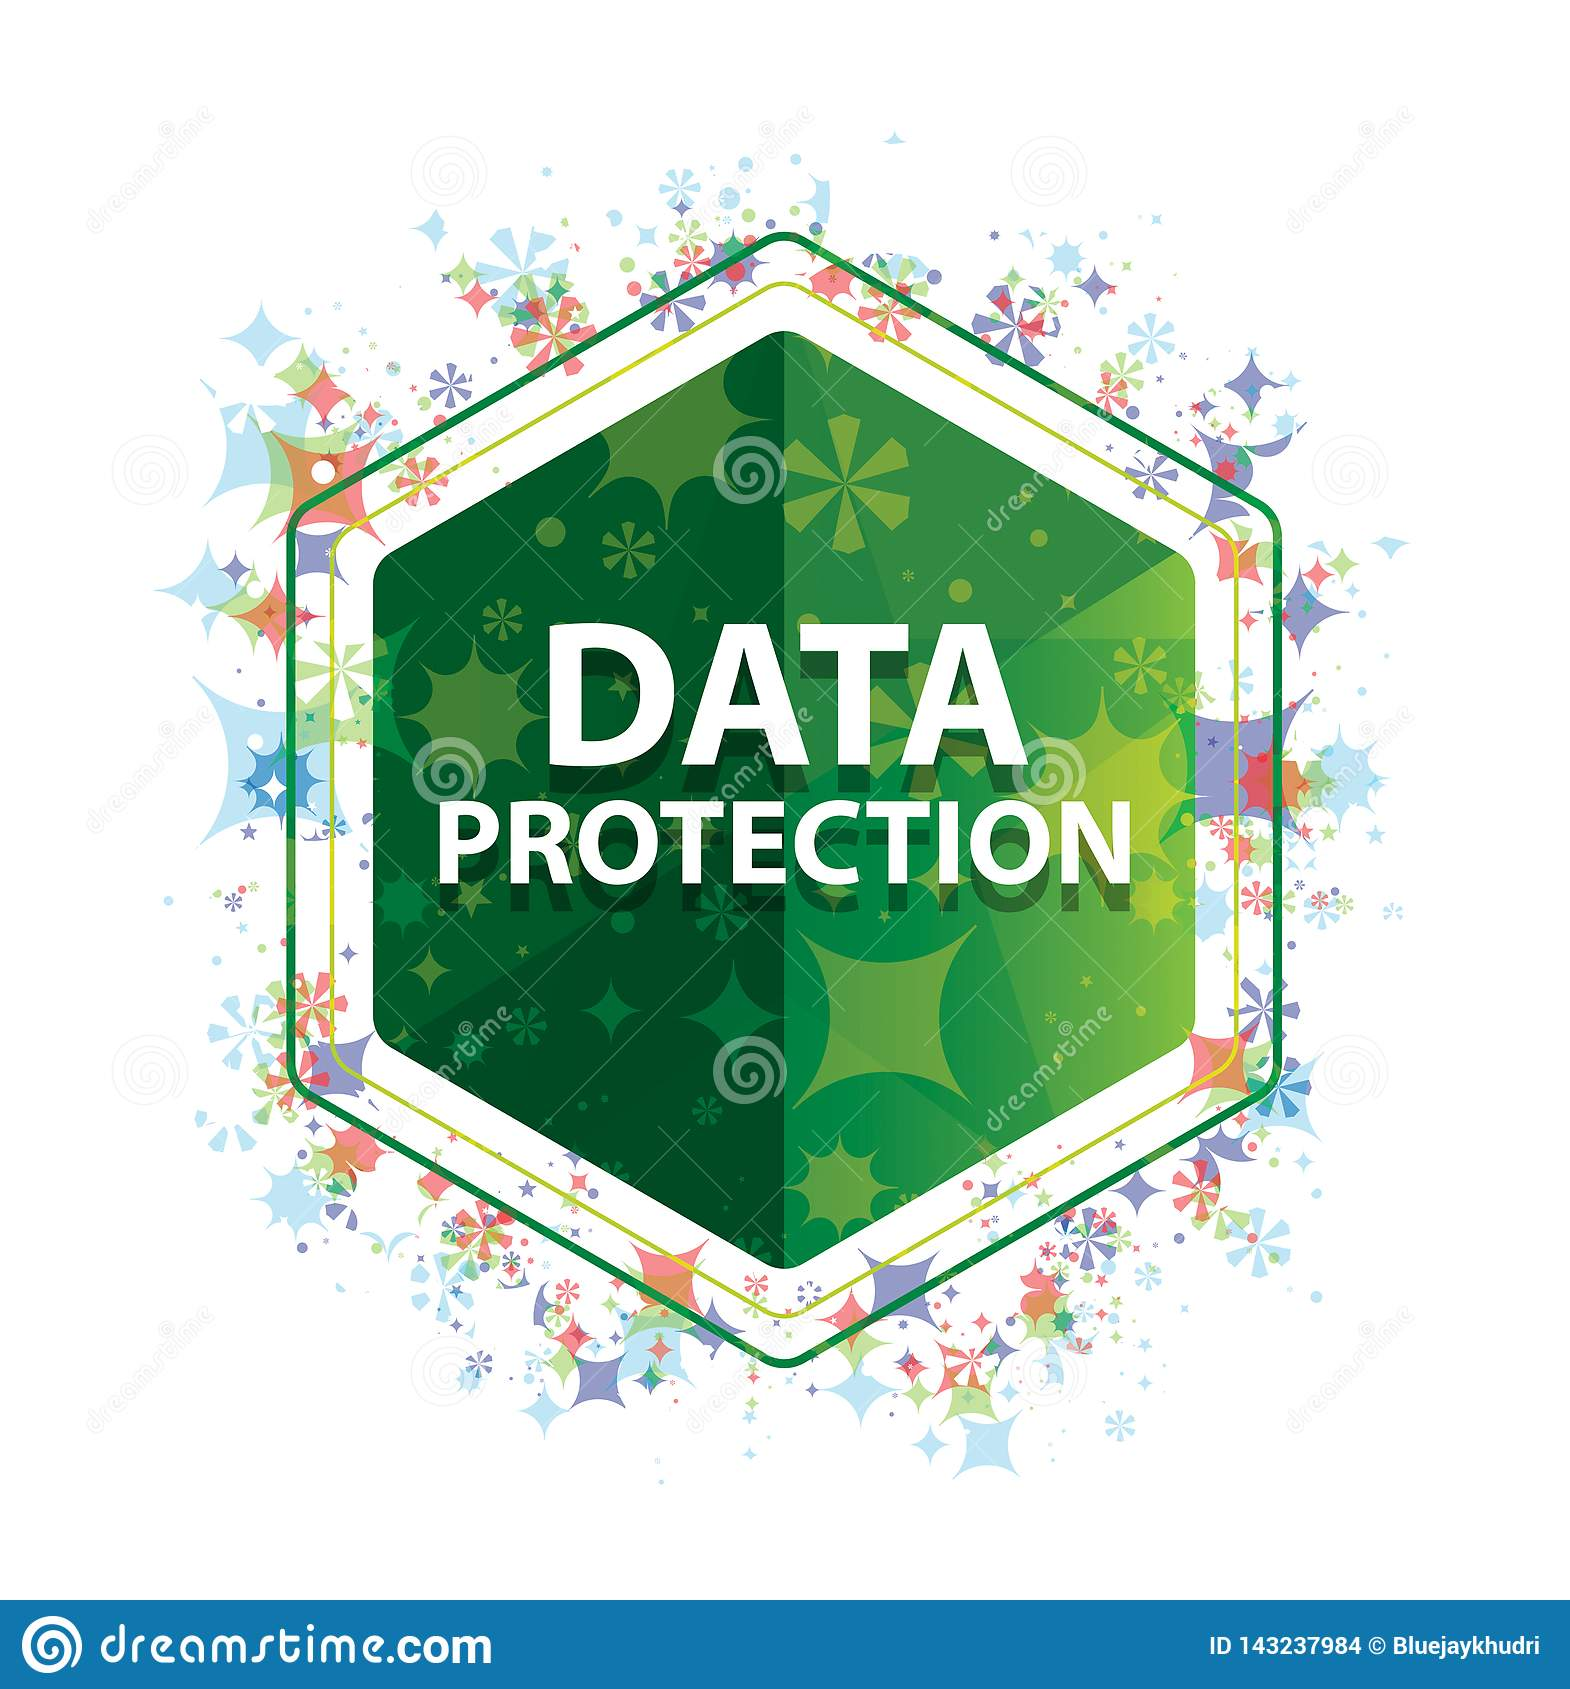 Data Protection floral plants pattern green hexagon button